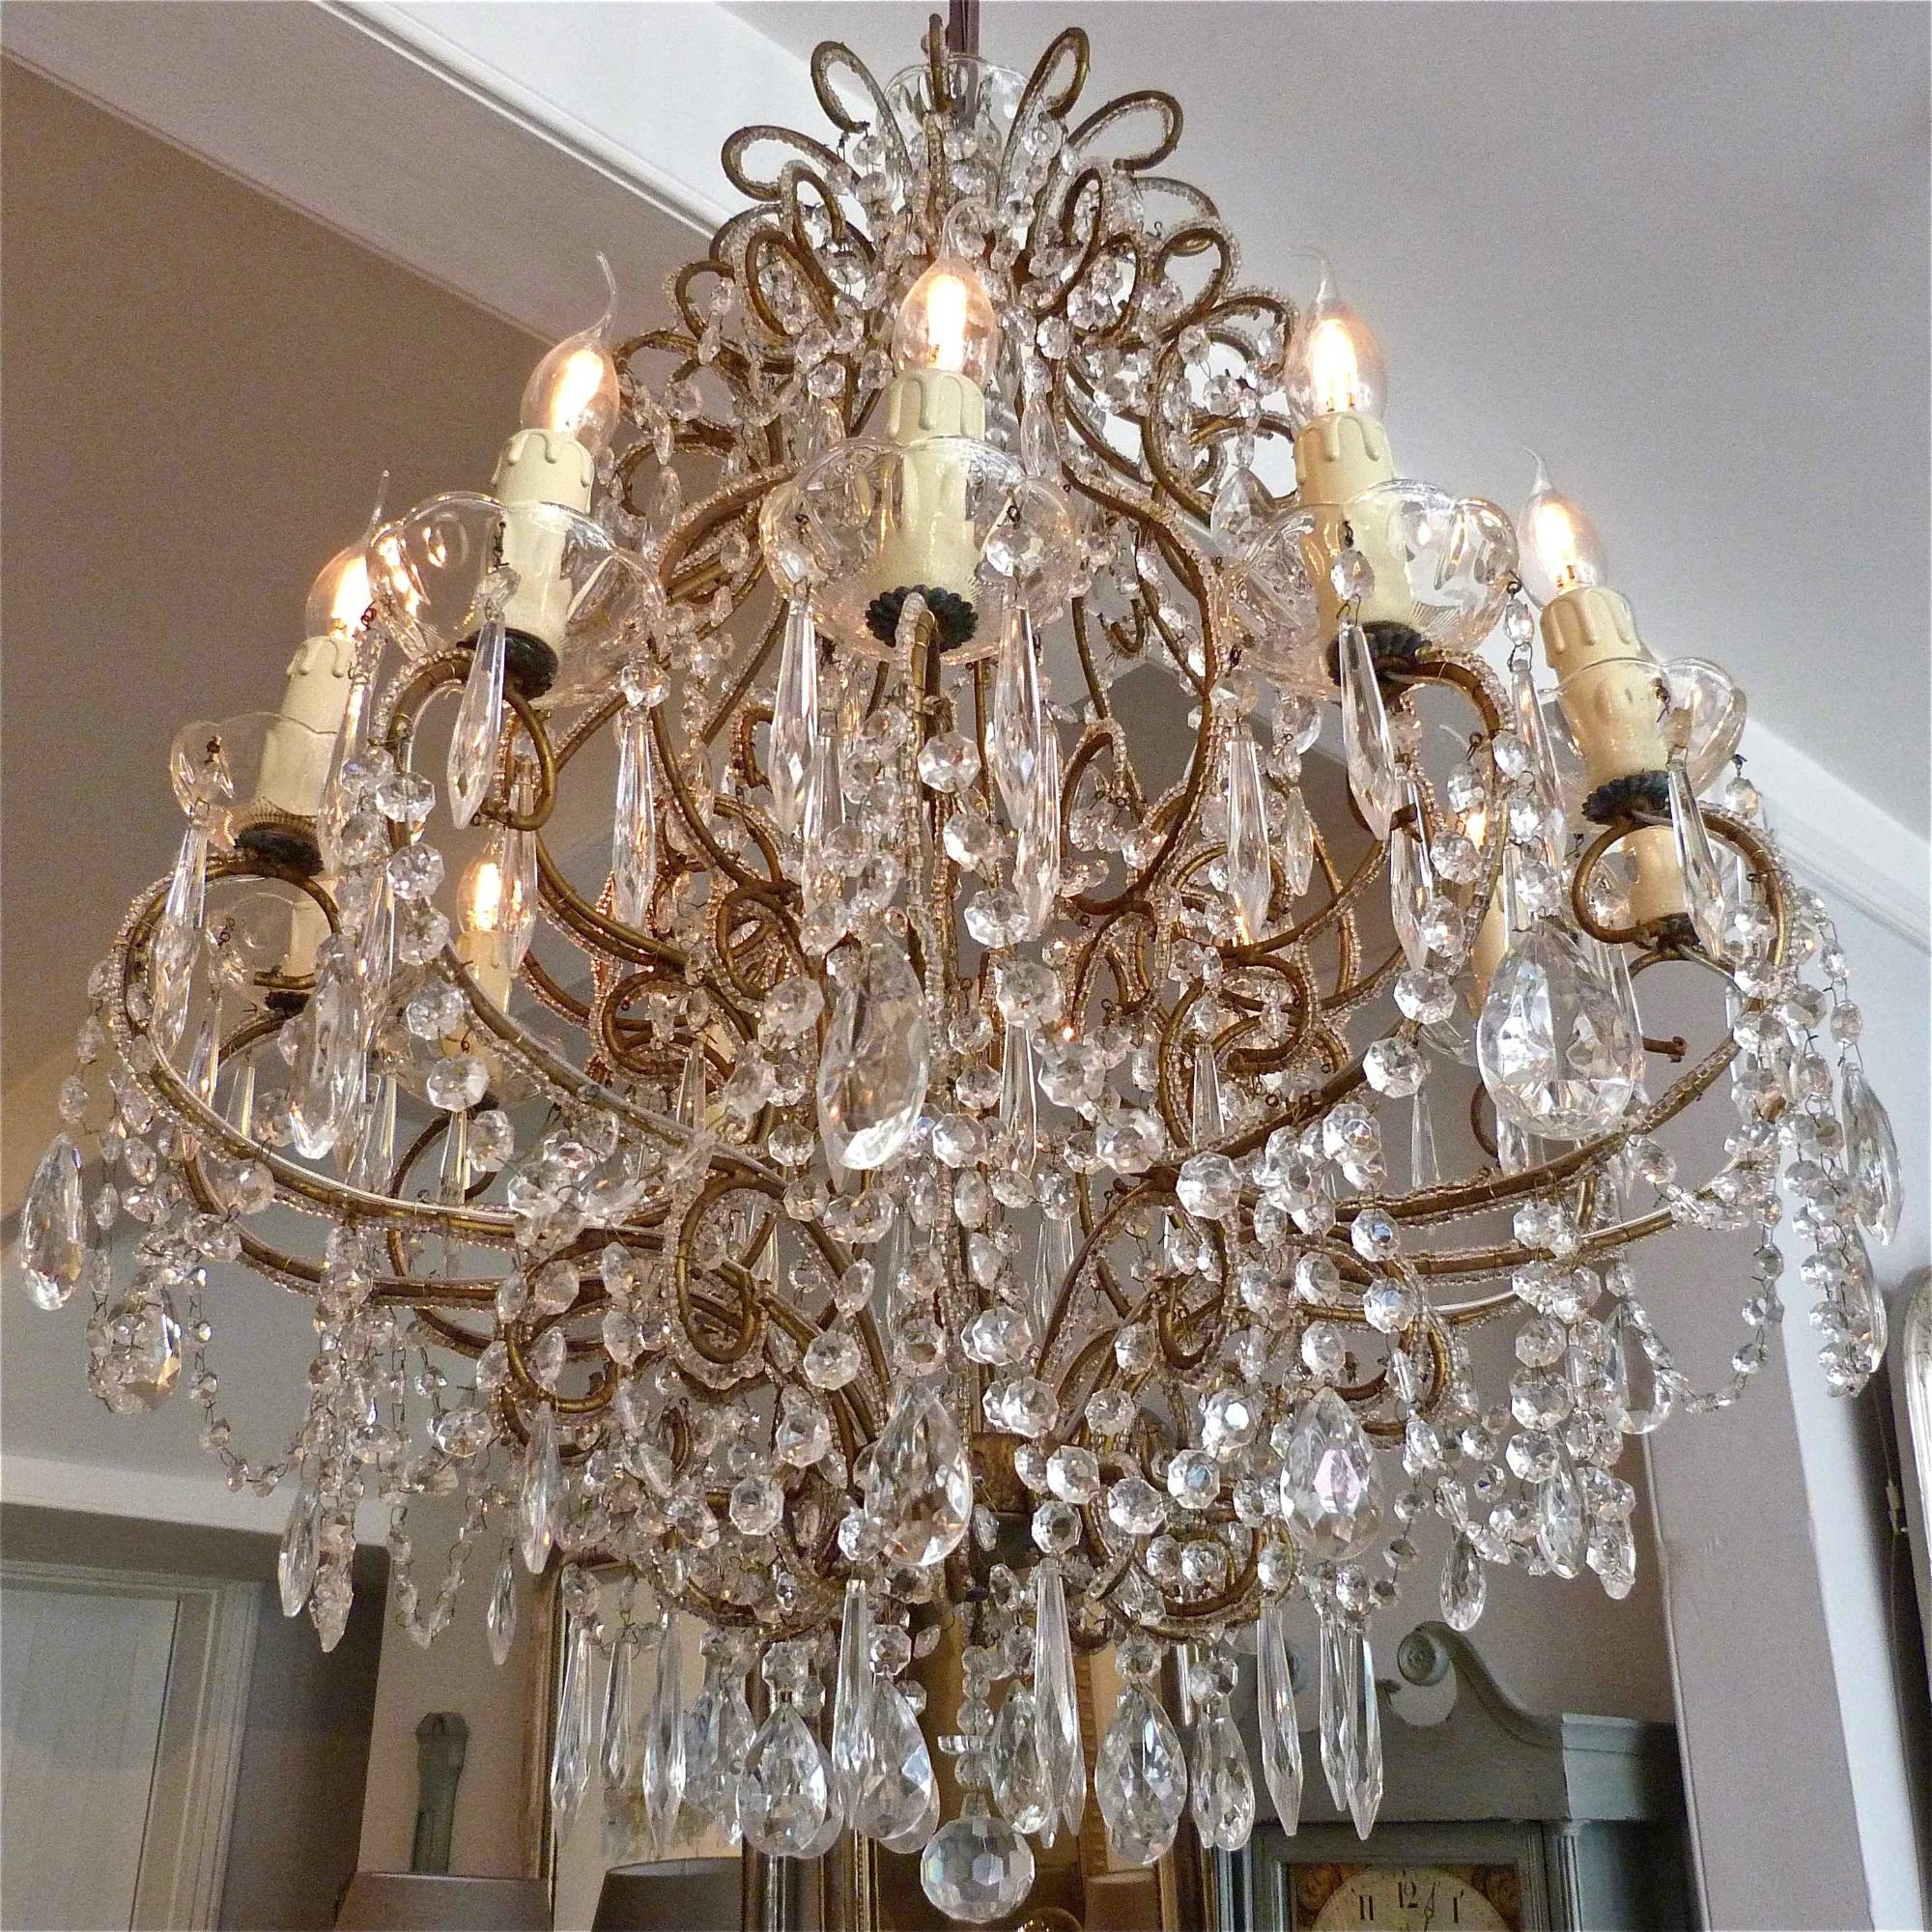 Pair Of Italian Chandeliers Trendfirst Pertaining To Italian Chandeliers (#8 of 12)